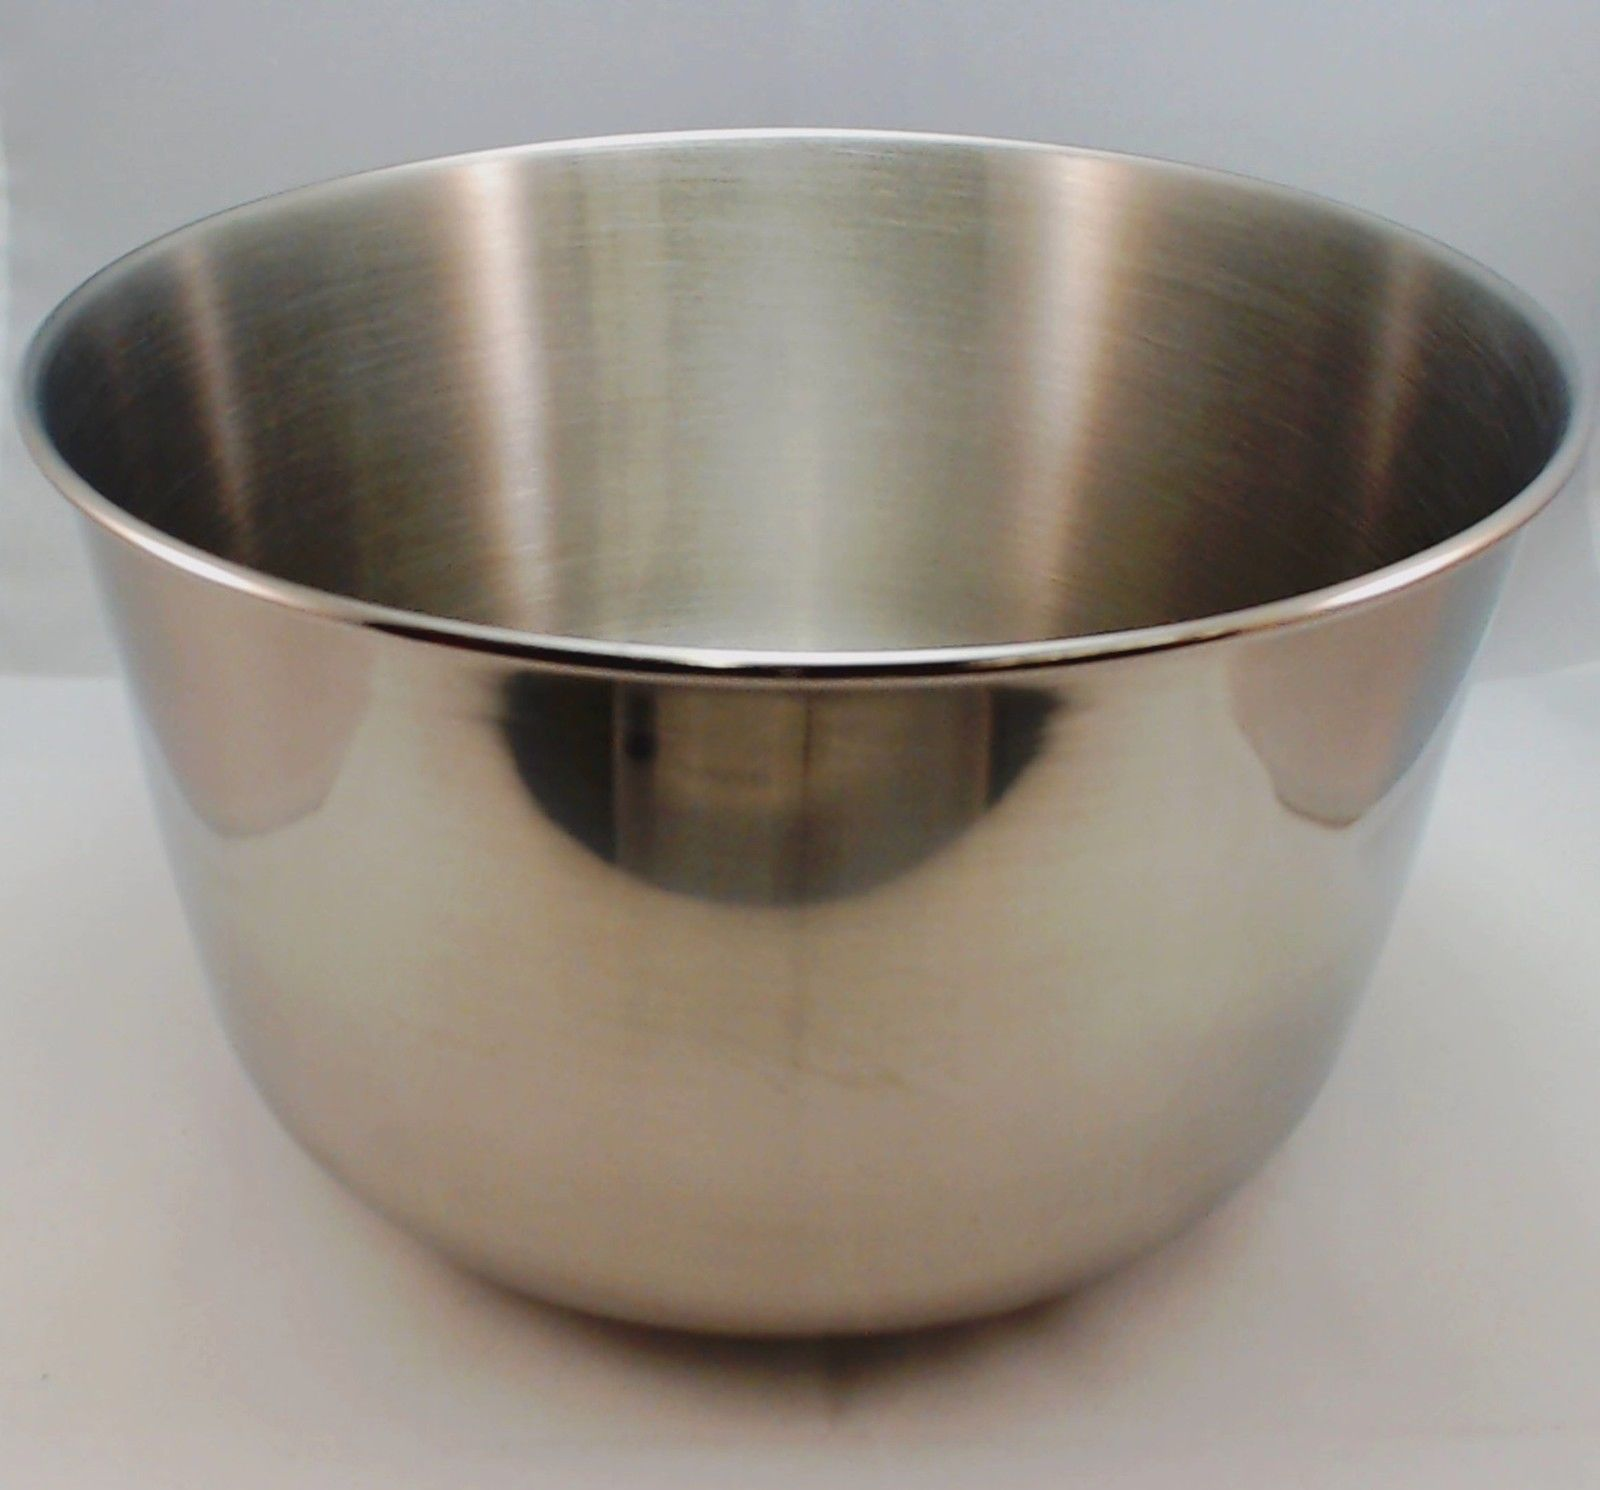 Sunbeam Stainless Steel Mixer 4 Qt Bowl  118780-000-000